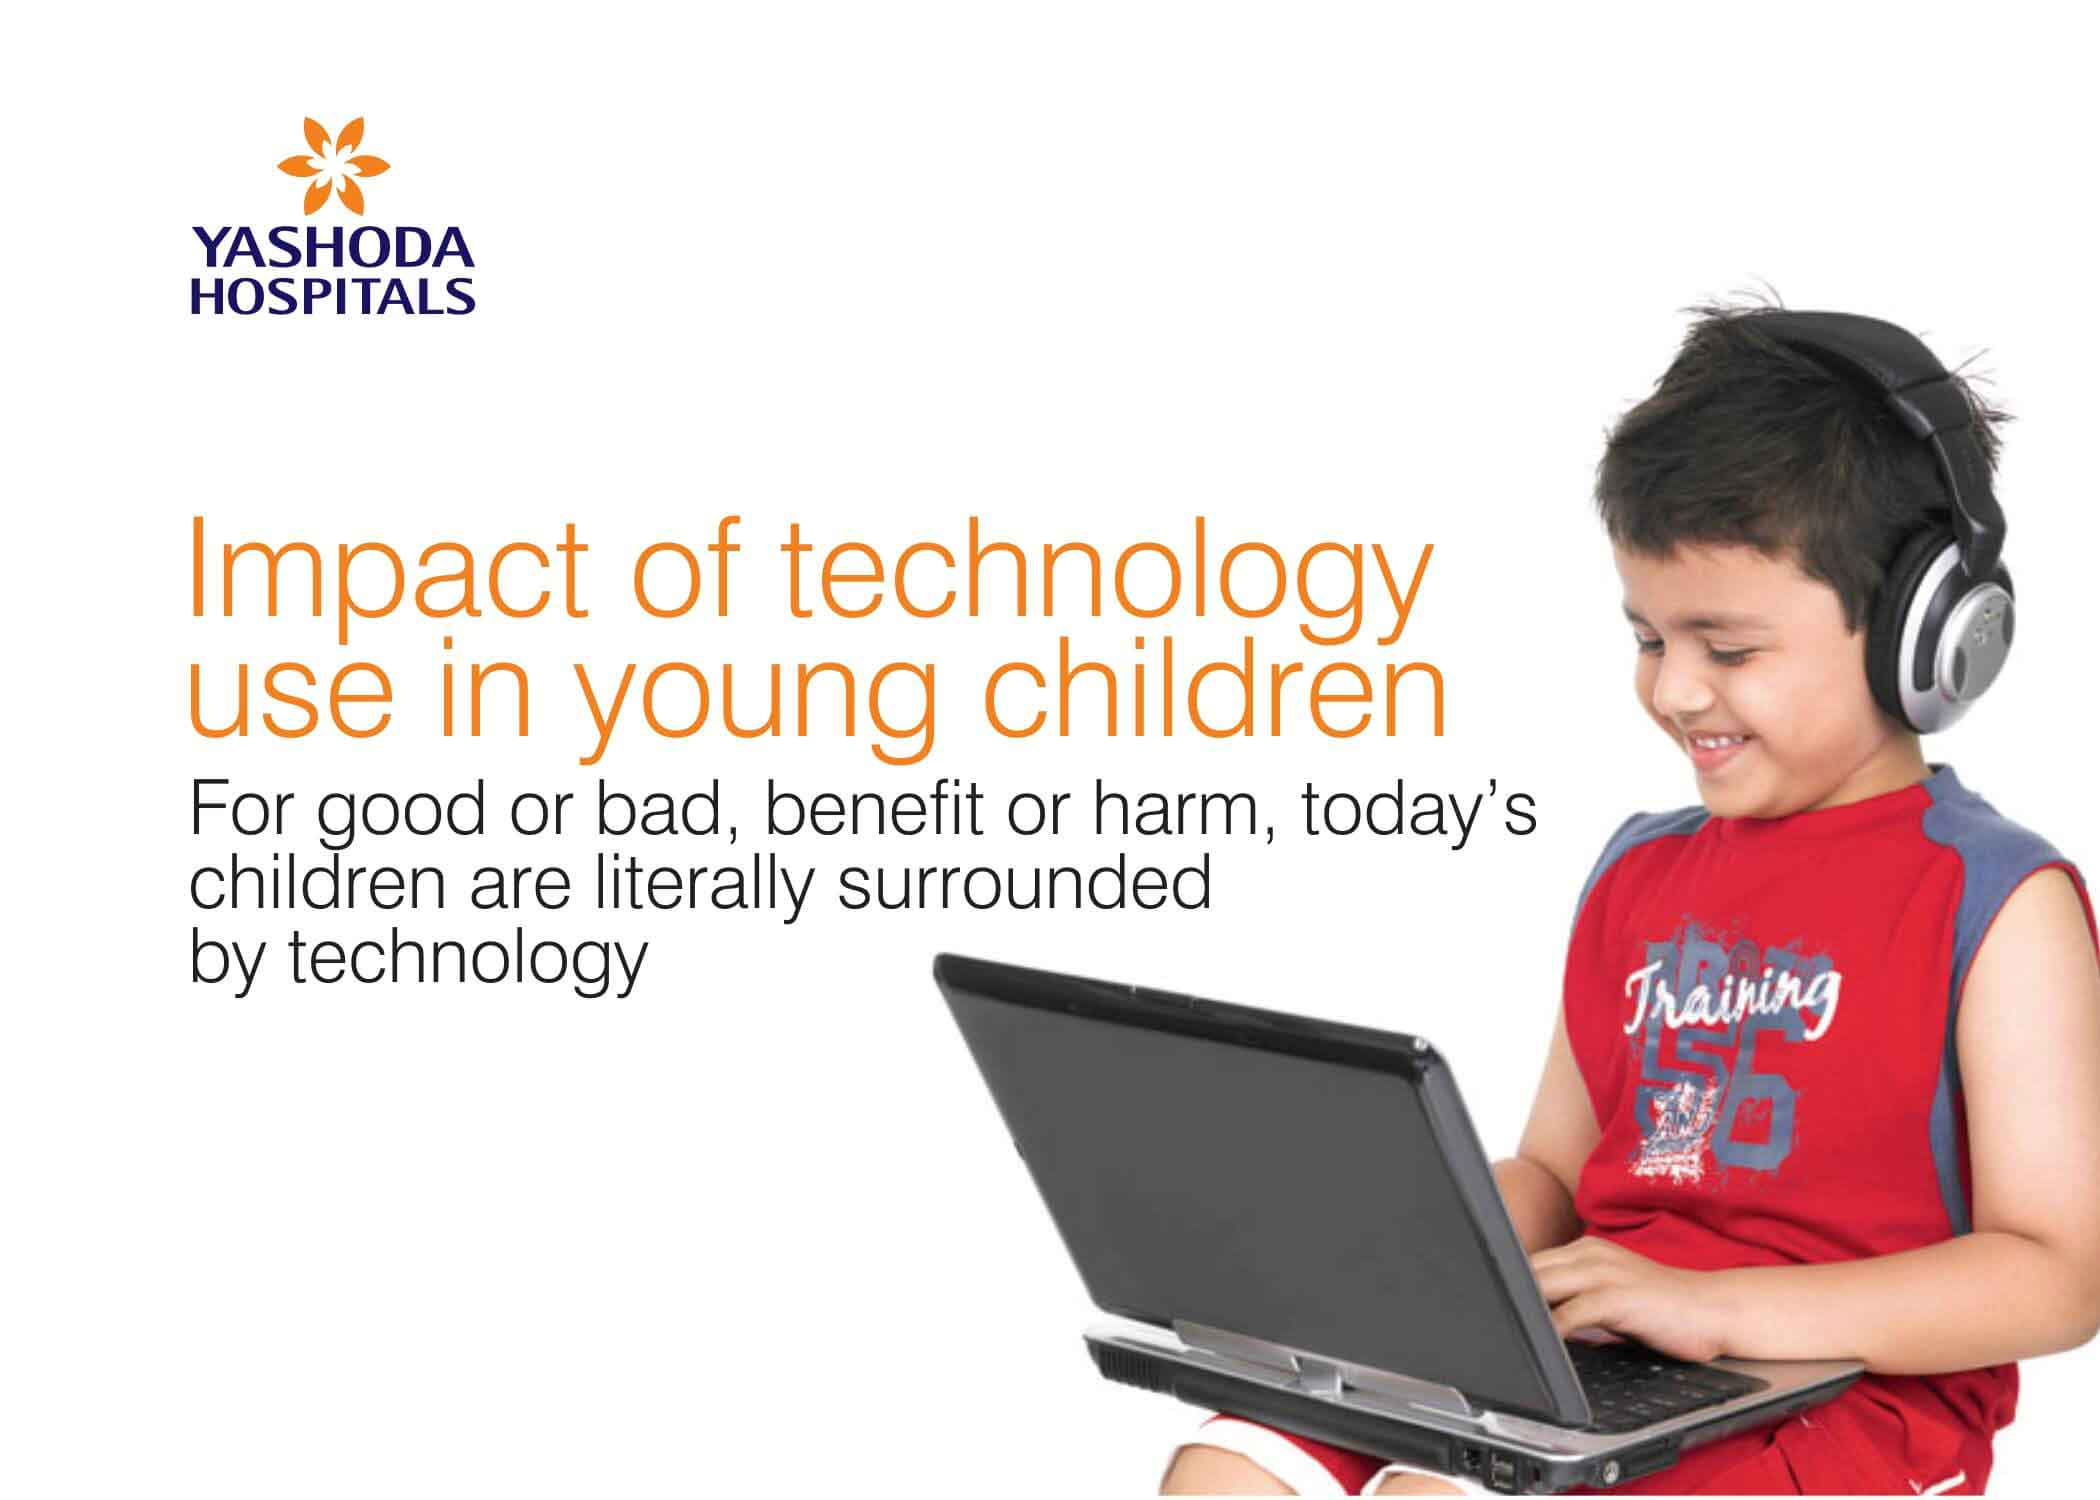 impacts of technology